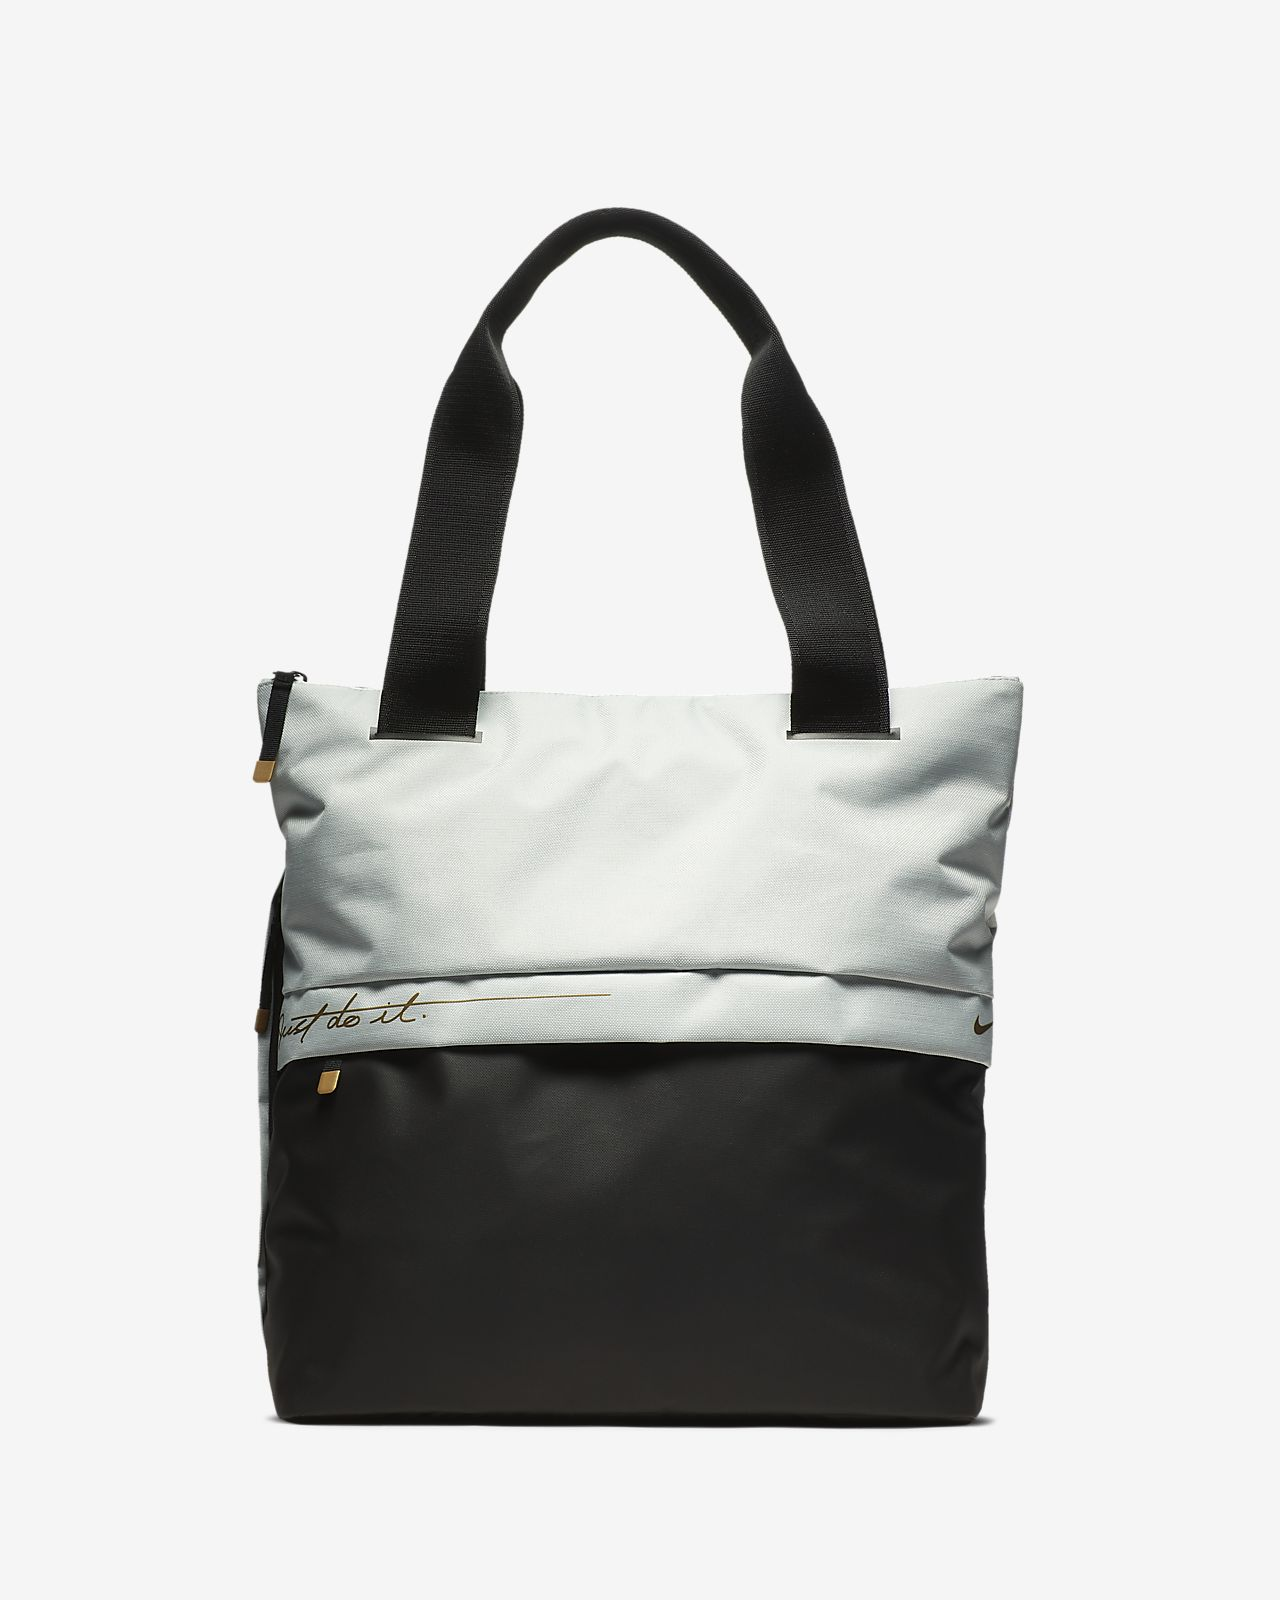 b5ce89fdbfd Nike Radiate Women s Graphic Training Tote Bag. Nike.com MY